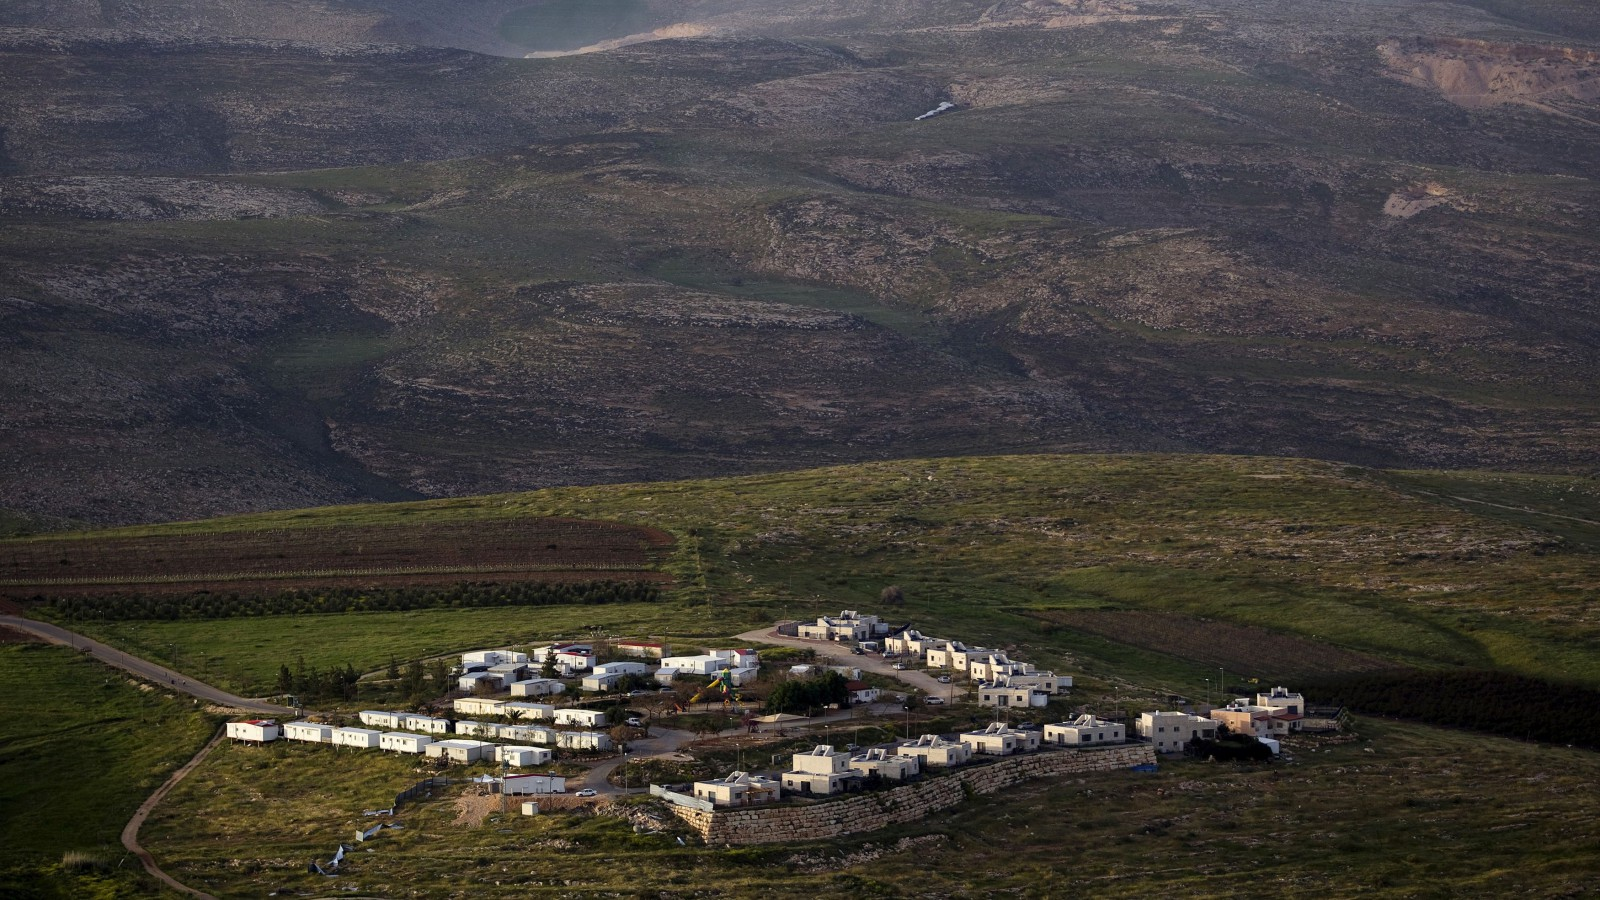 The Jewish settlement of Mitzpe Kramim east of the West Bank city of Ramallah is seen March 25, 2015. Israeli Prime Minister Benjamin Netanyahu walks the tightrope between his political allegiances and the international community, whose faith in his commitment to a two-state solution with the Palestinians - including a halt to settlement-building - is wearing thin. About to begin his fourth term, likely this time at the head of a heavily right-leaning coalition, Netanyahu will be watched closely, at home and abroad, for any moves on settlements, after he ruled out any future Palestinian state before the poll. Picture taken March 25, 2015. To match Insight ISRAEL-PALESTINIANS/SETTLEMENTS  REUTERS/Ronen Zvulun  - RTR4W920